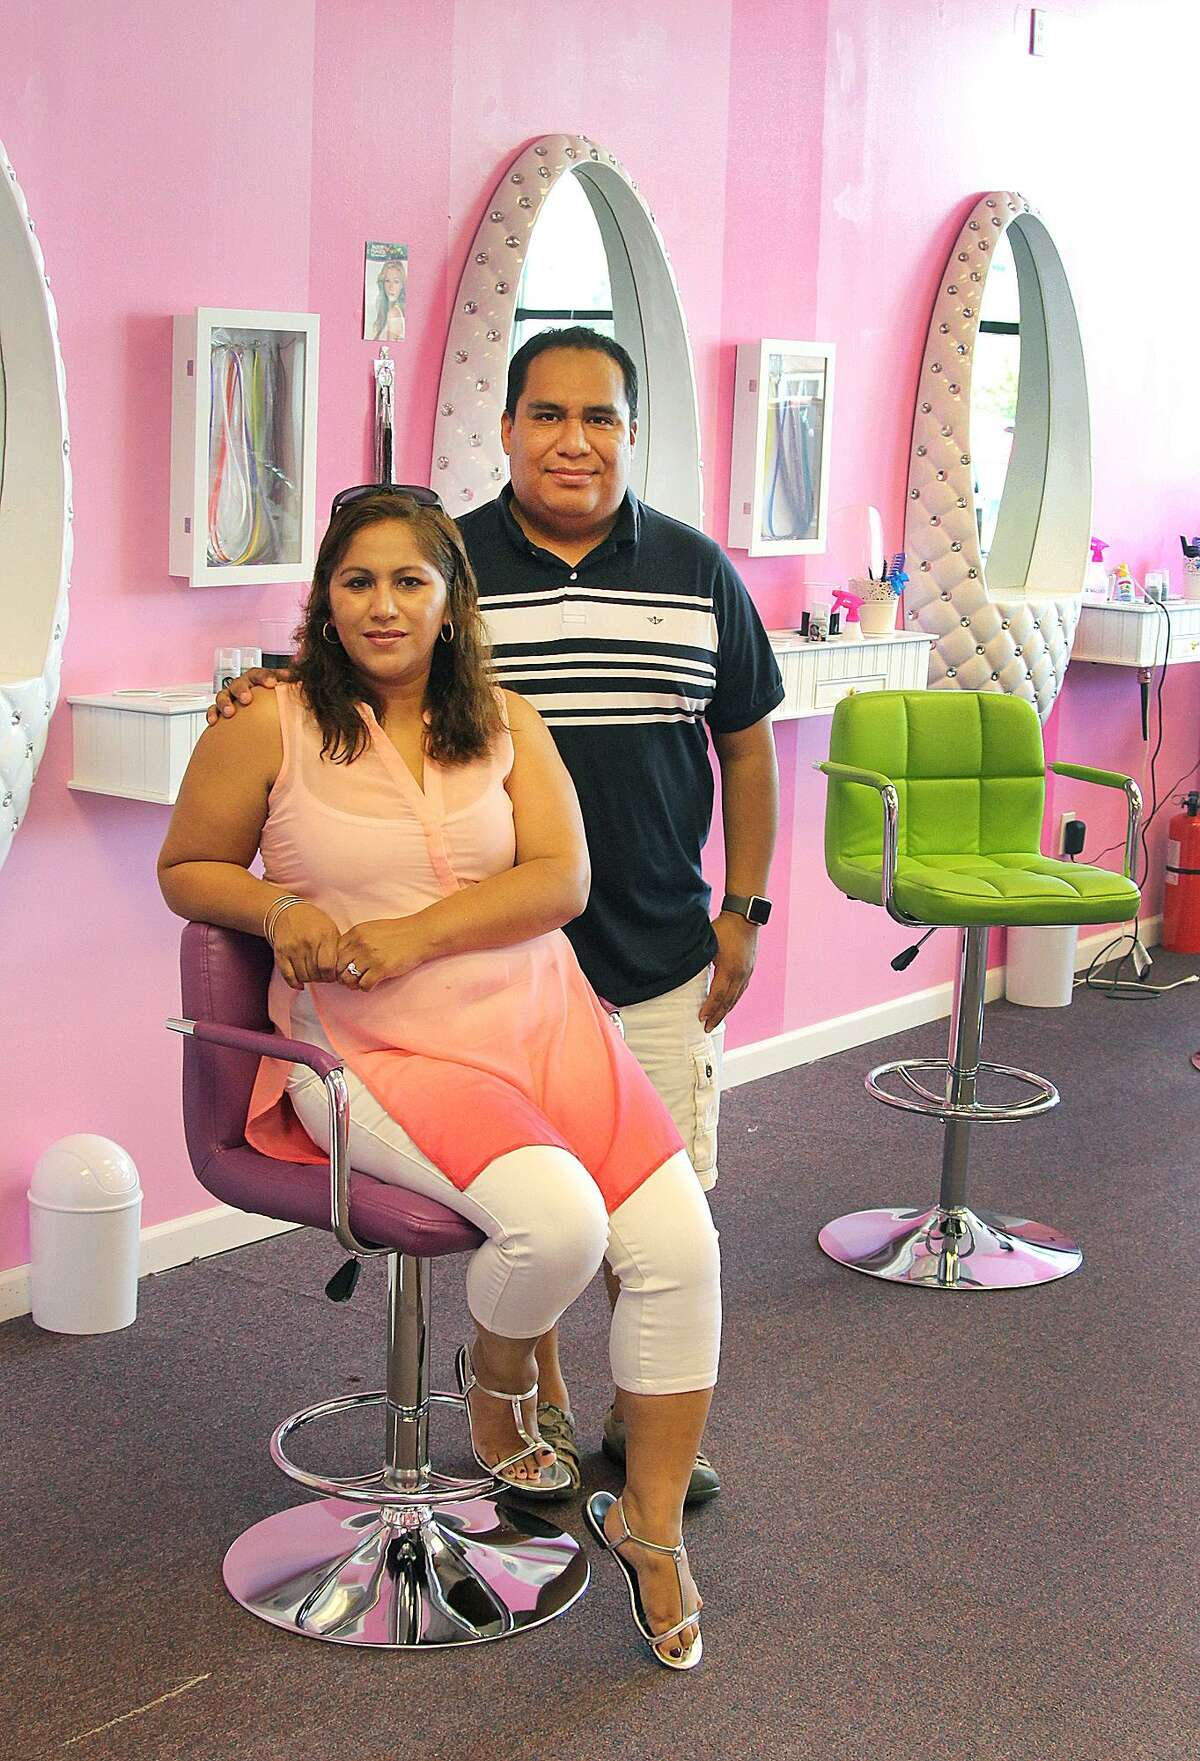 Carlos and Patricia Munoz at their new kids spa business, Princess Factory, in New Milford, Conn., on Friday, May 19, 2017.